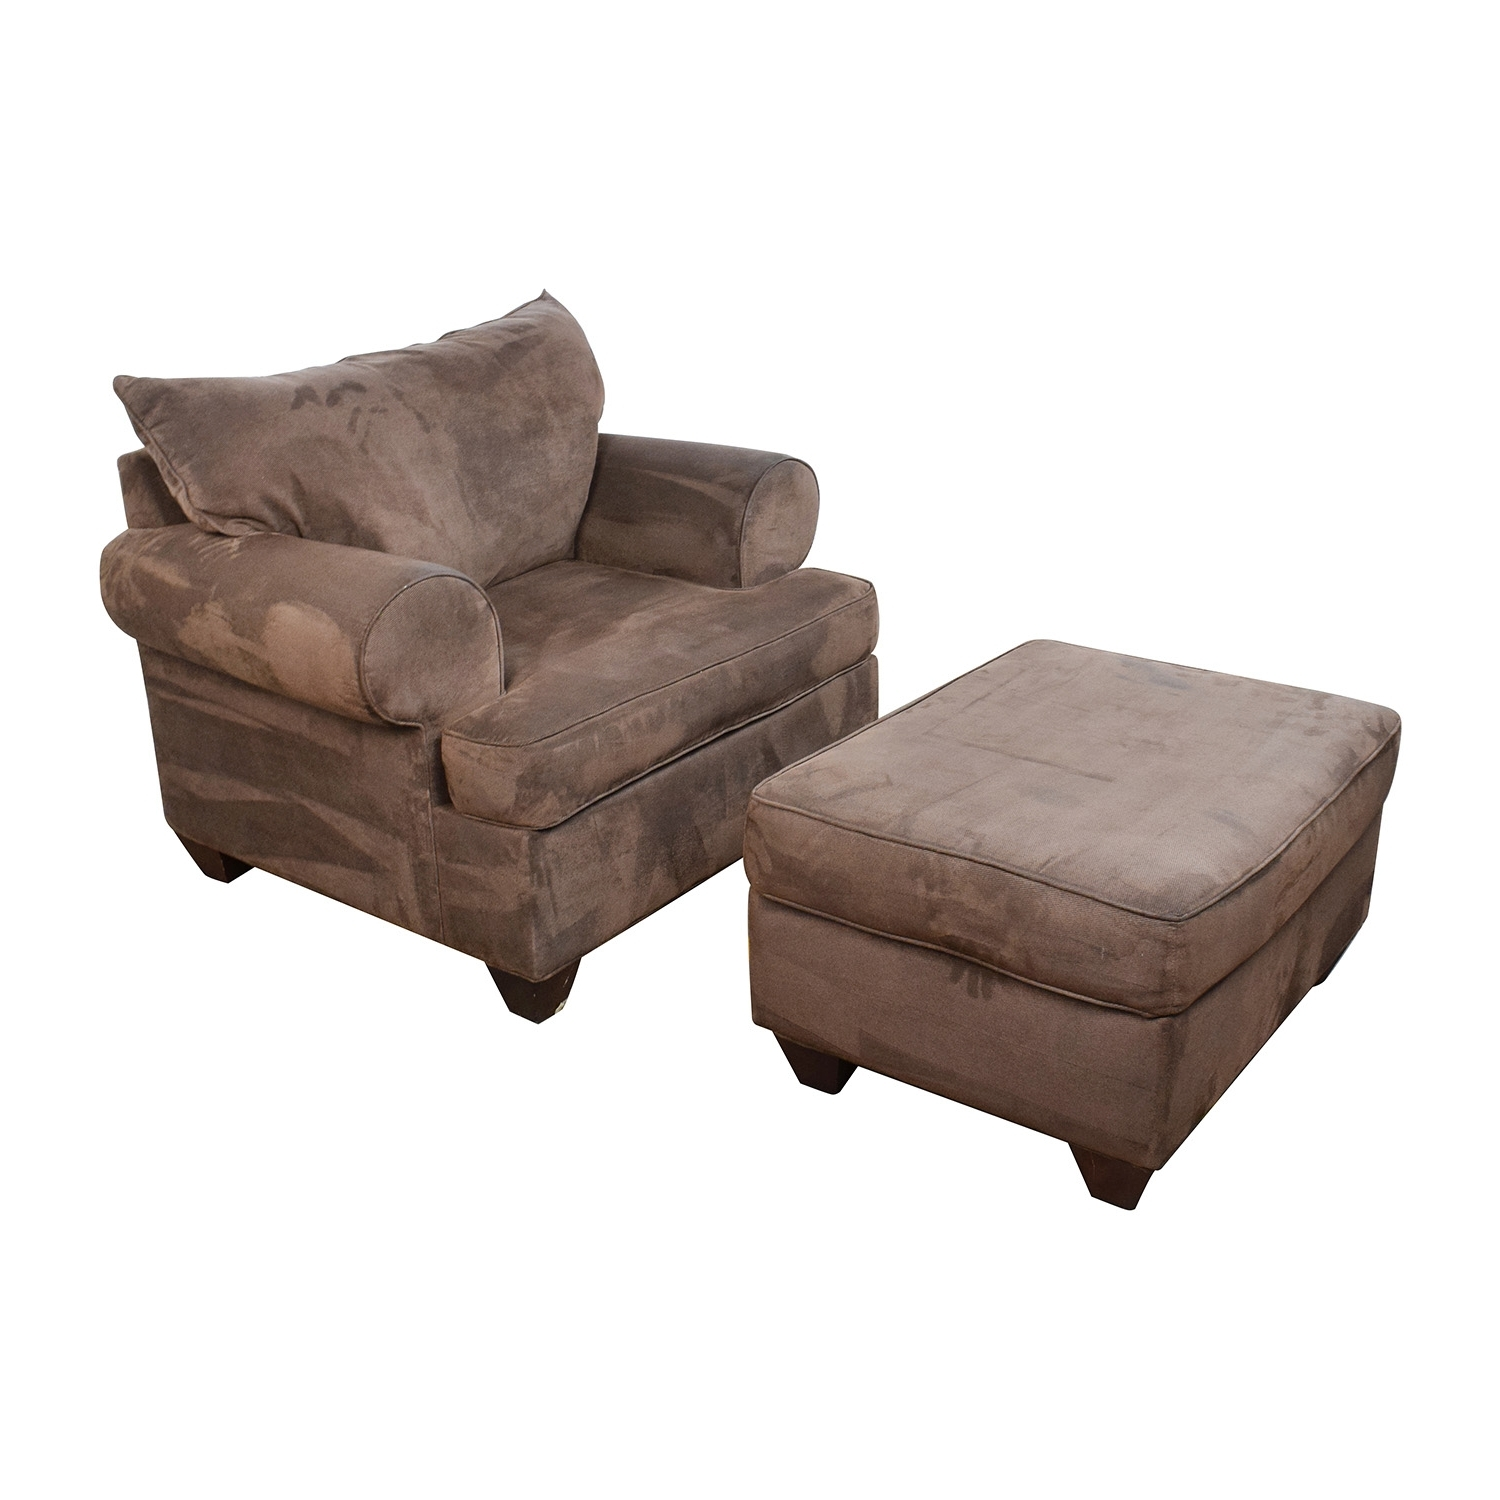 [%67% Off – Dark Brown Sofa Chair With Ottoman / Chairs Pertaining To Favorite Brown Sofa Chairs|Brown Sofa Chairs Regarding Widely Used 67% Off – Dark Brown Sofa Chair With Ottoman / Chairs|Widely Used Brown Sofa Chairs Regarding 67% Off – Dark Brown Sofa Chair With Ottoman / Chairs|2018 67% Off – Dark Brown Sofa Chair With Ottoman / Chairs Regarding Brown Sofa Chairs%] (View 3 of 20)